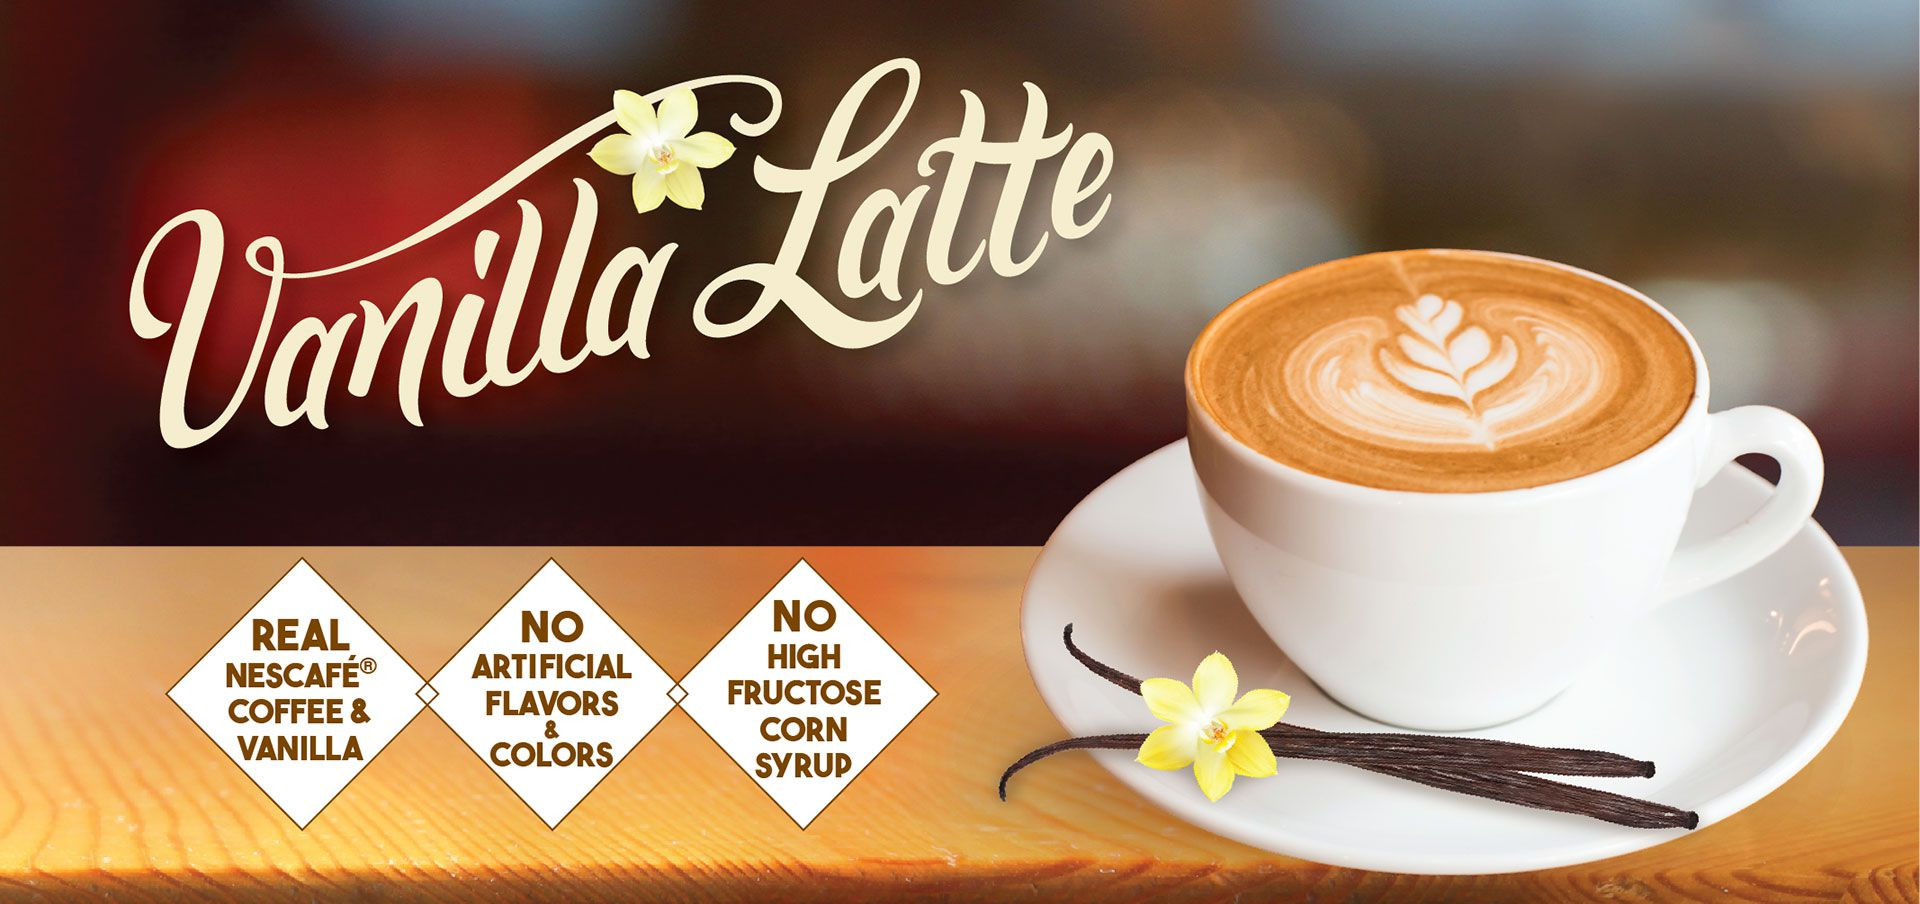 vanilla latté label image